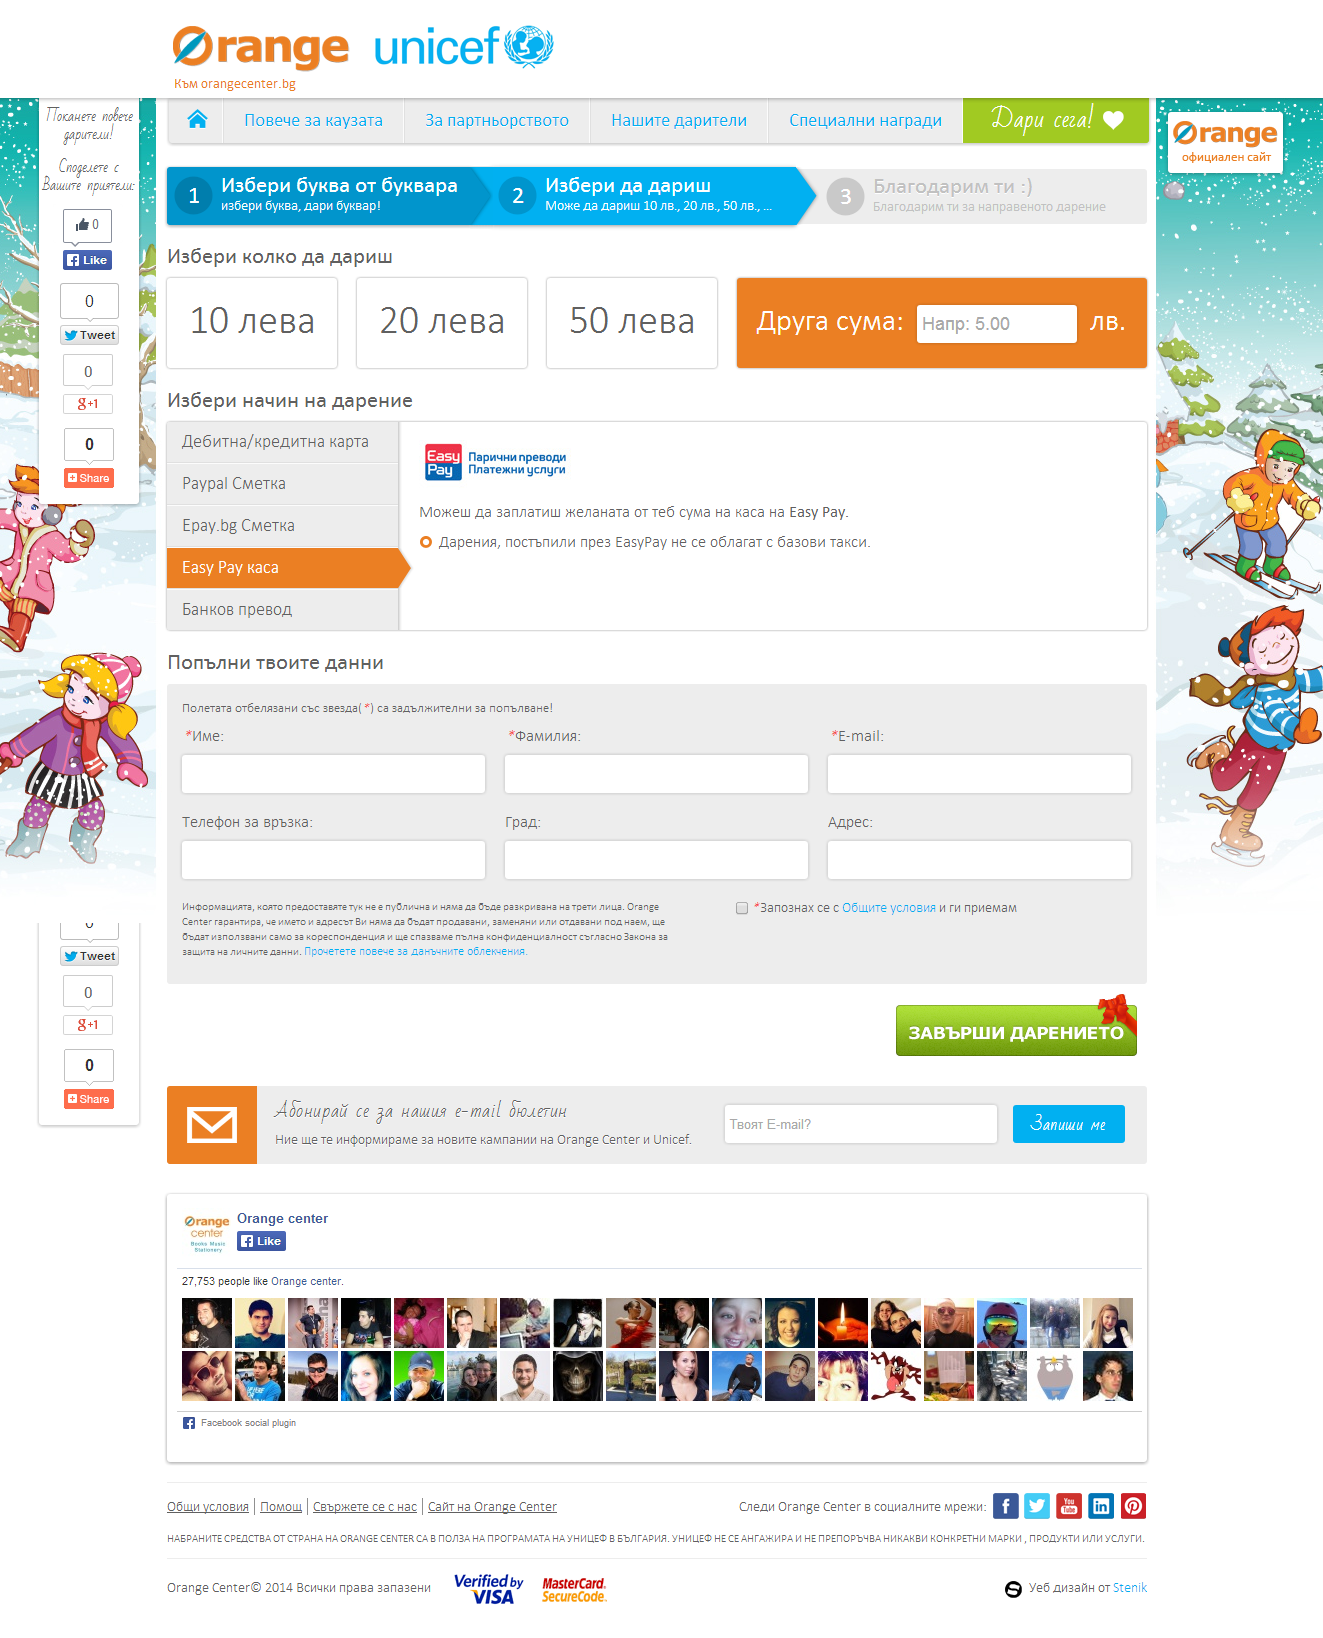 Website for online donation of Orange and Unicef, Orange Center - Web Sites, Stenik